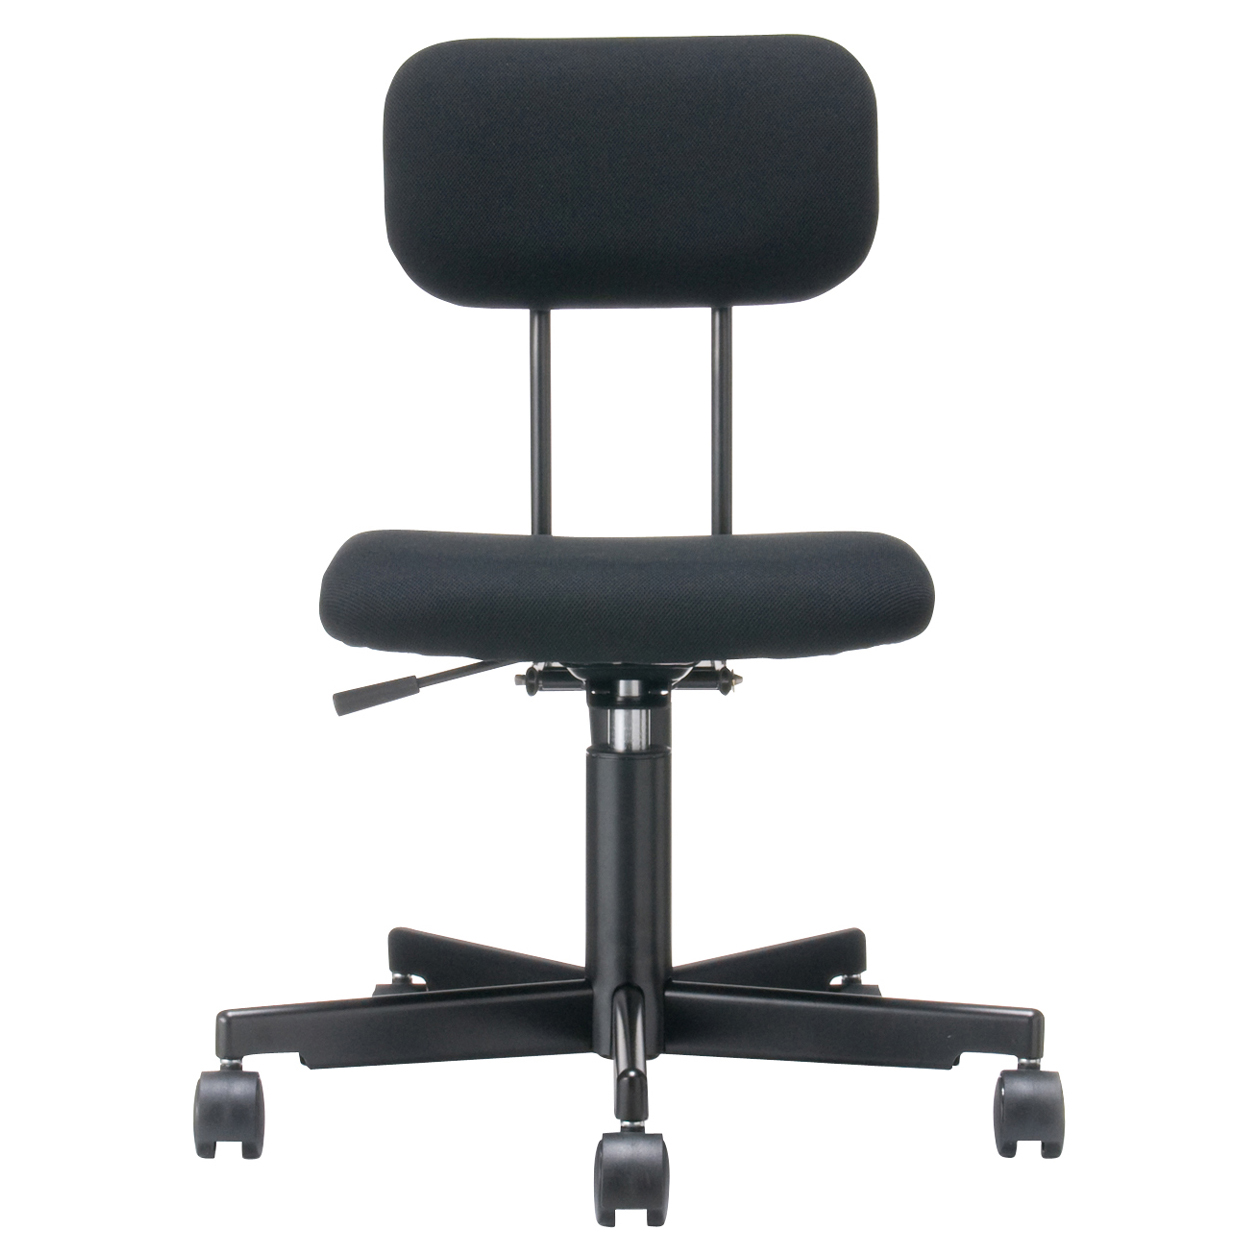 Working Chair Working Chair 無印良品 Muji